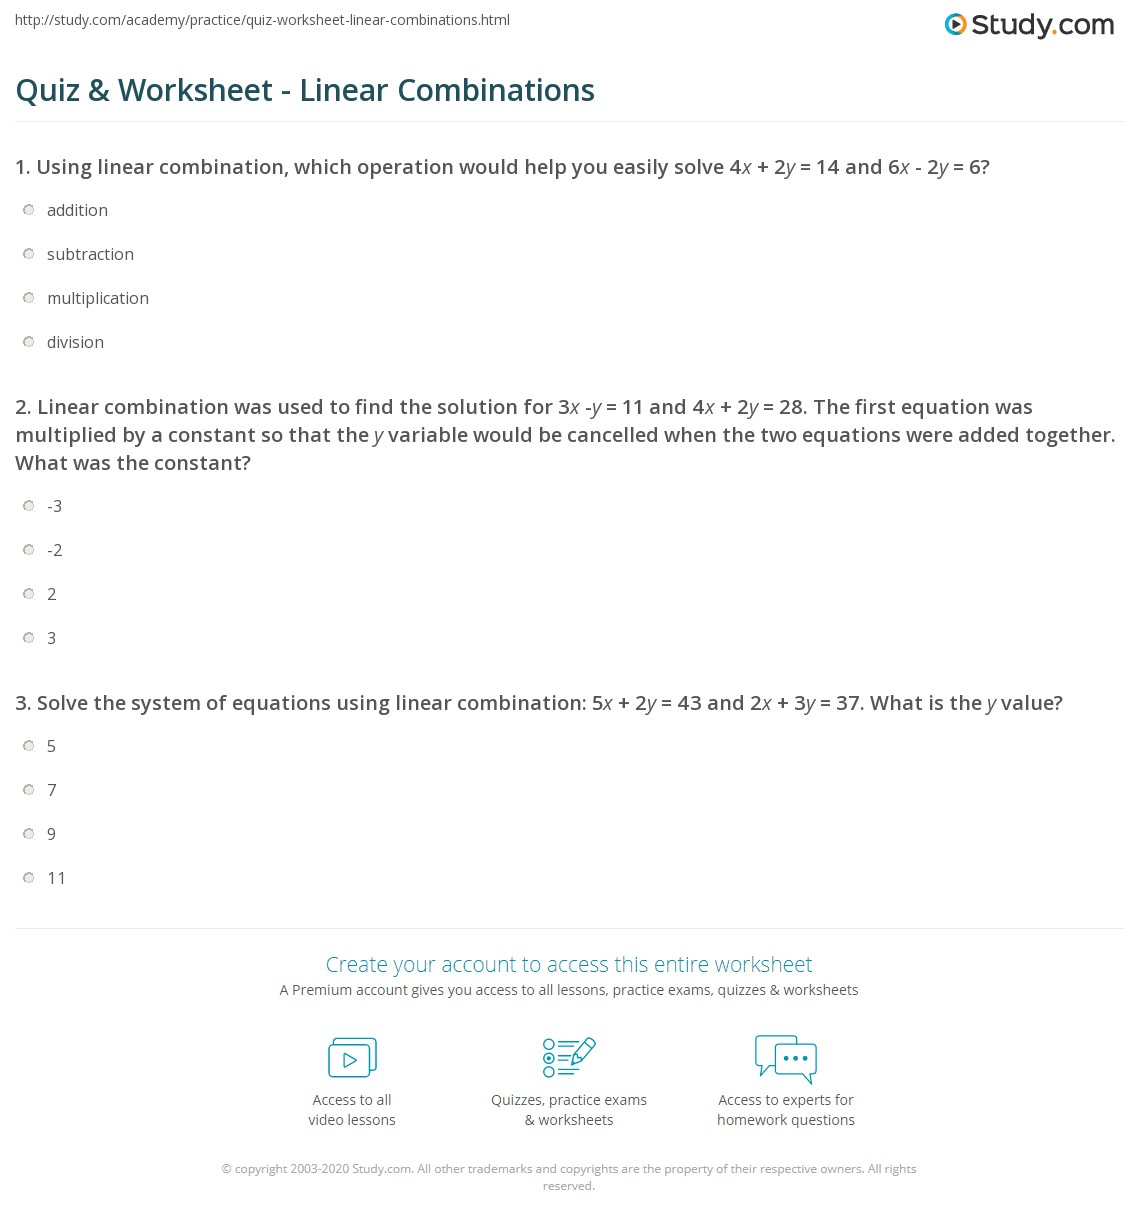 Workbooks solving linear equations with two variables worksheets : Quiz & Worksheet - Linear Combinations | Study.com